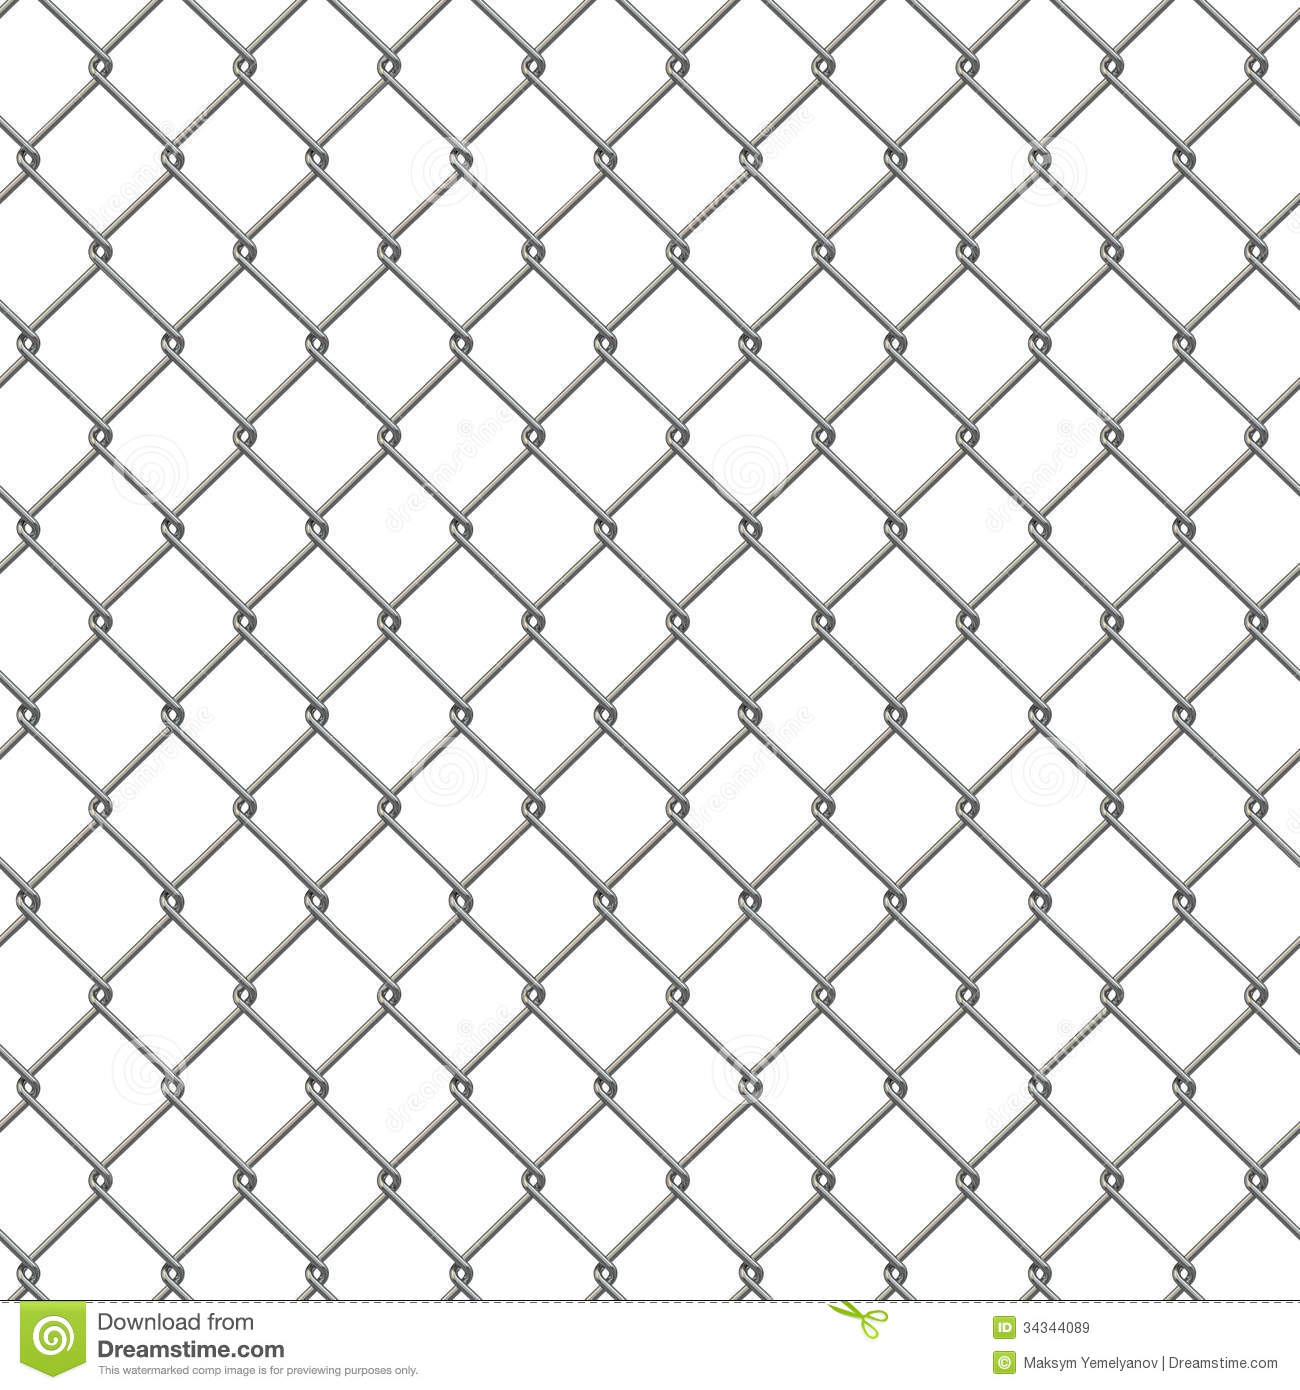 Tiling Texture Of Barbed Wire Fence Royalty Free Stock